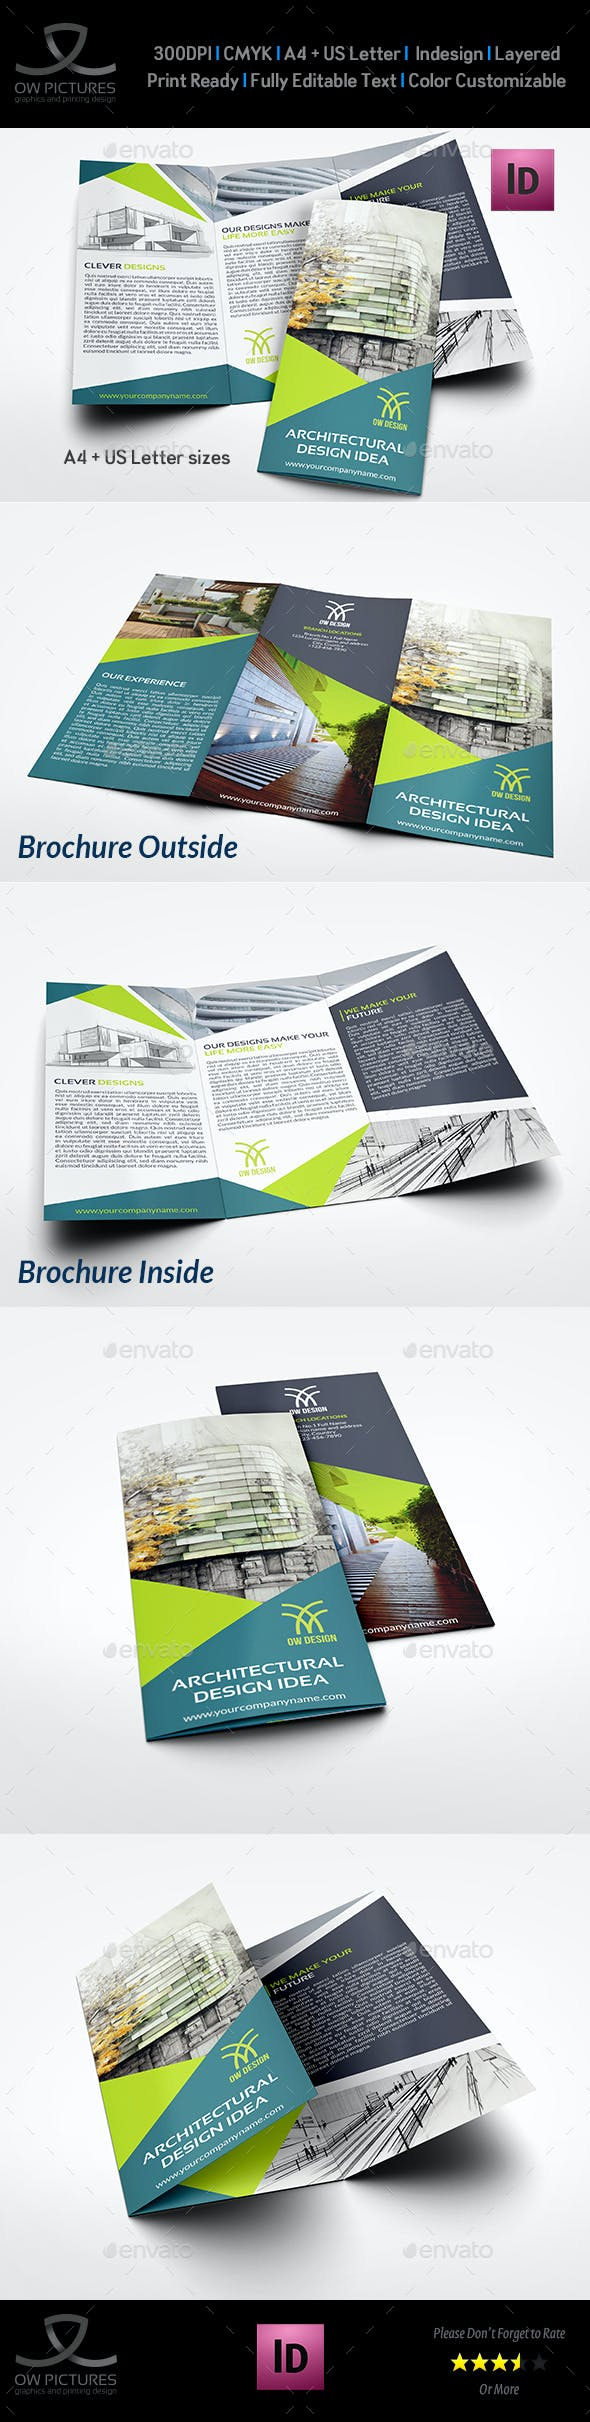 architectural design tri fold brochure template brochures print templates